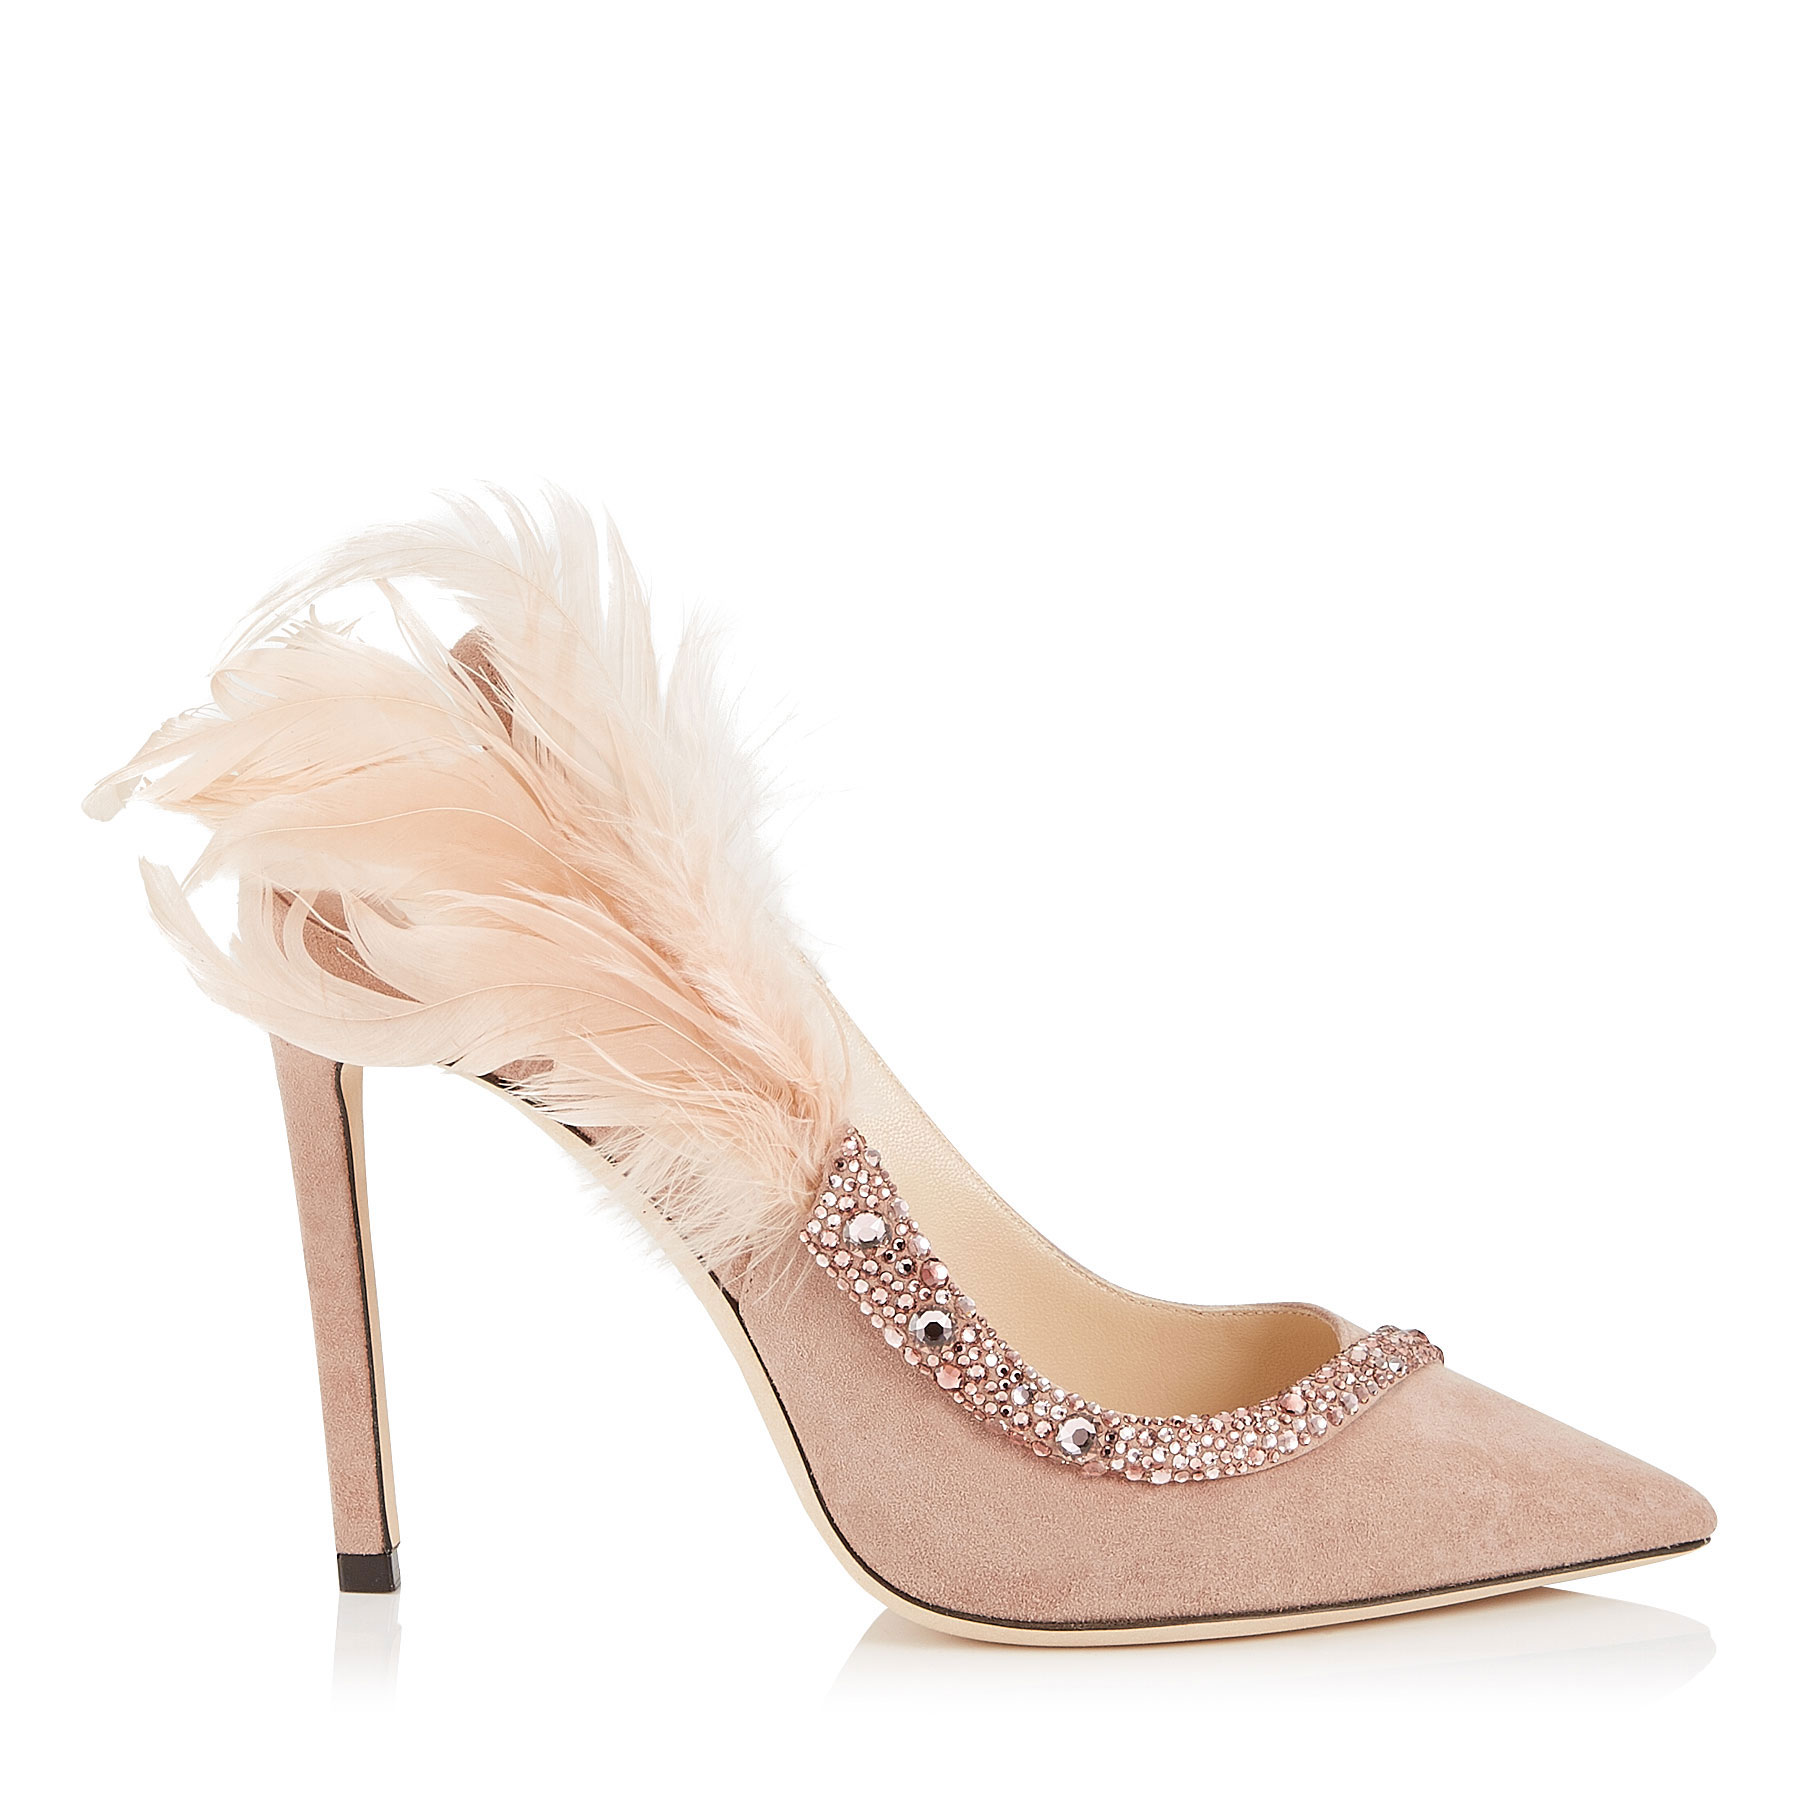 TACEY 100 Ballet Pink Suede Pointy Toe Pumps with Crystals and Feathers by Jimmy Choo